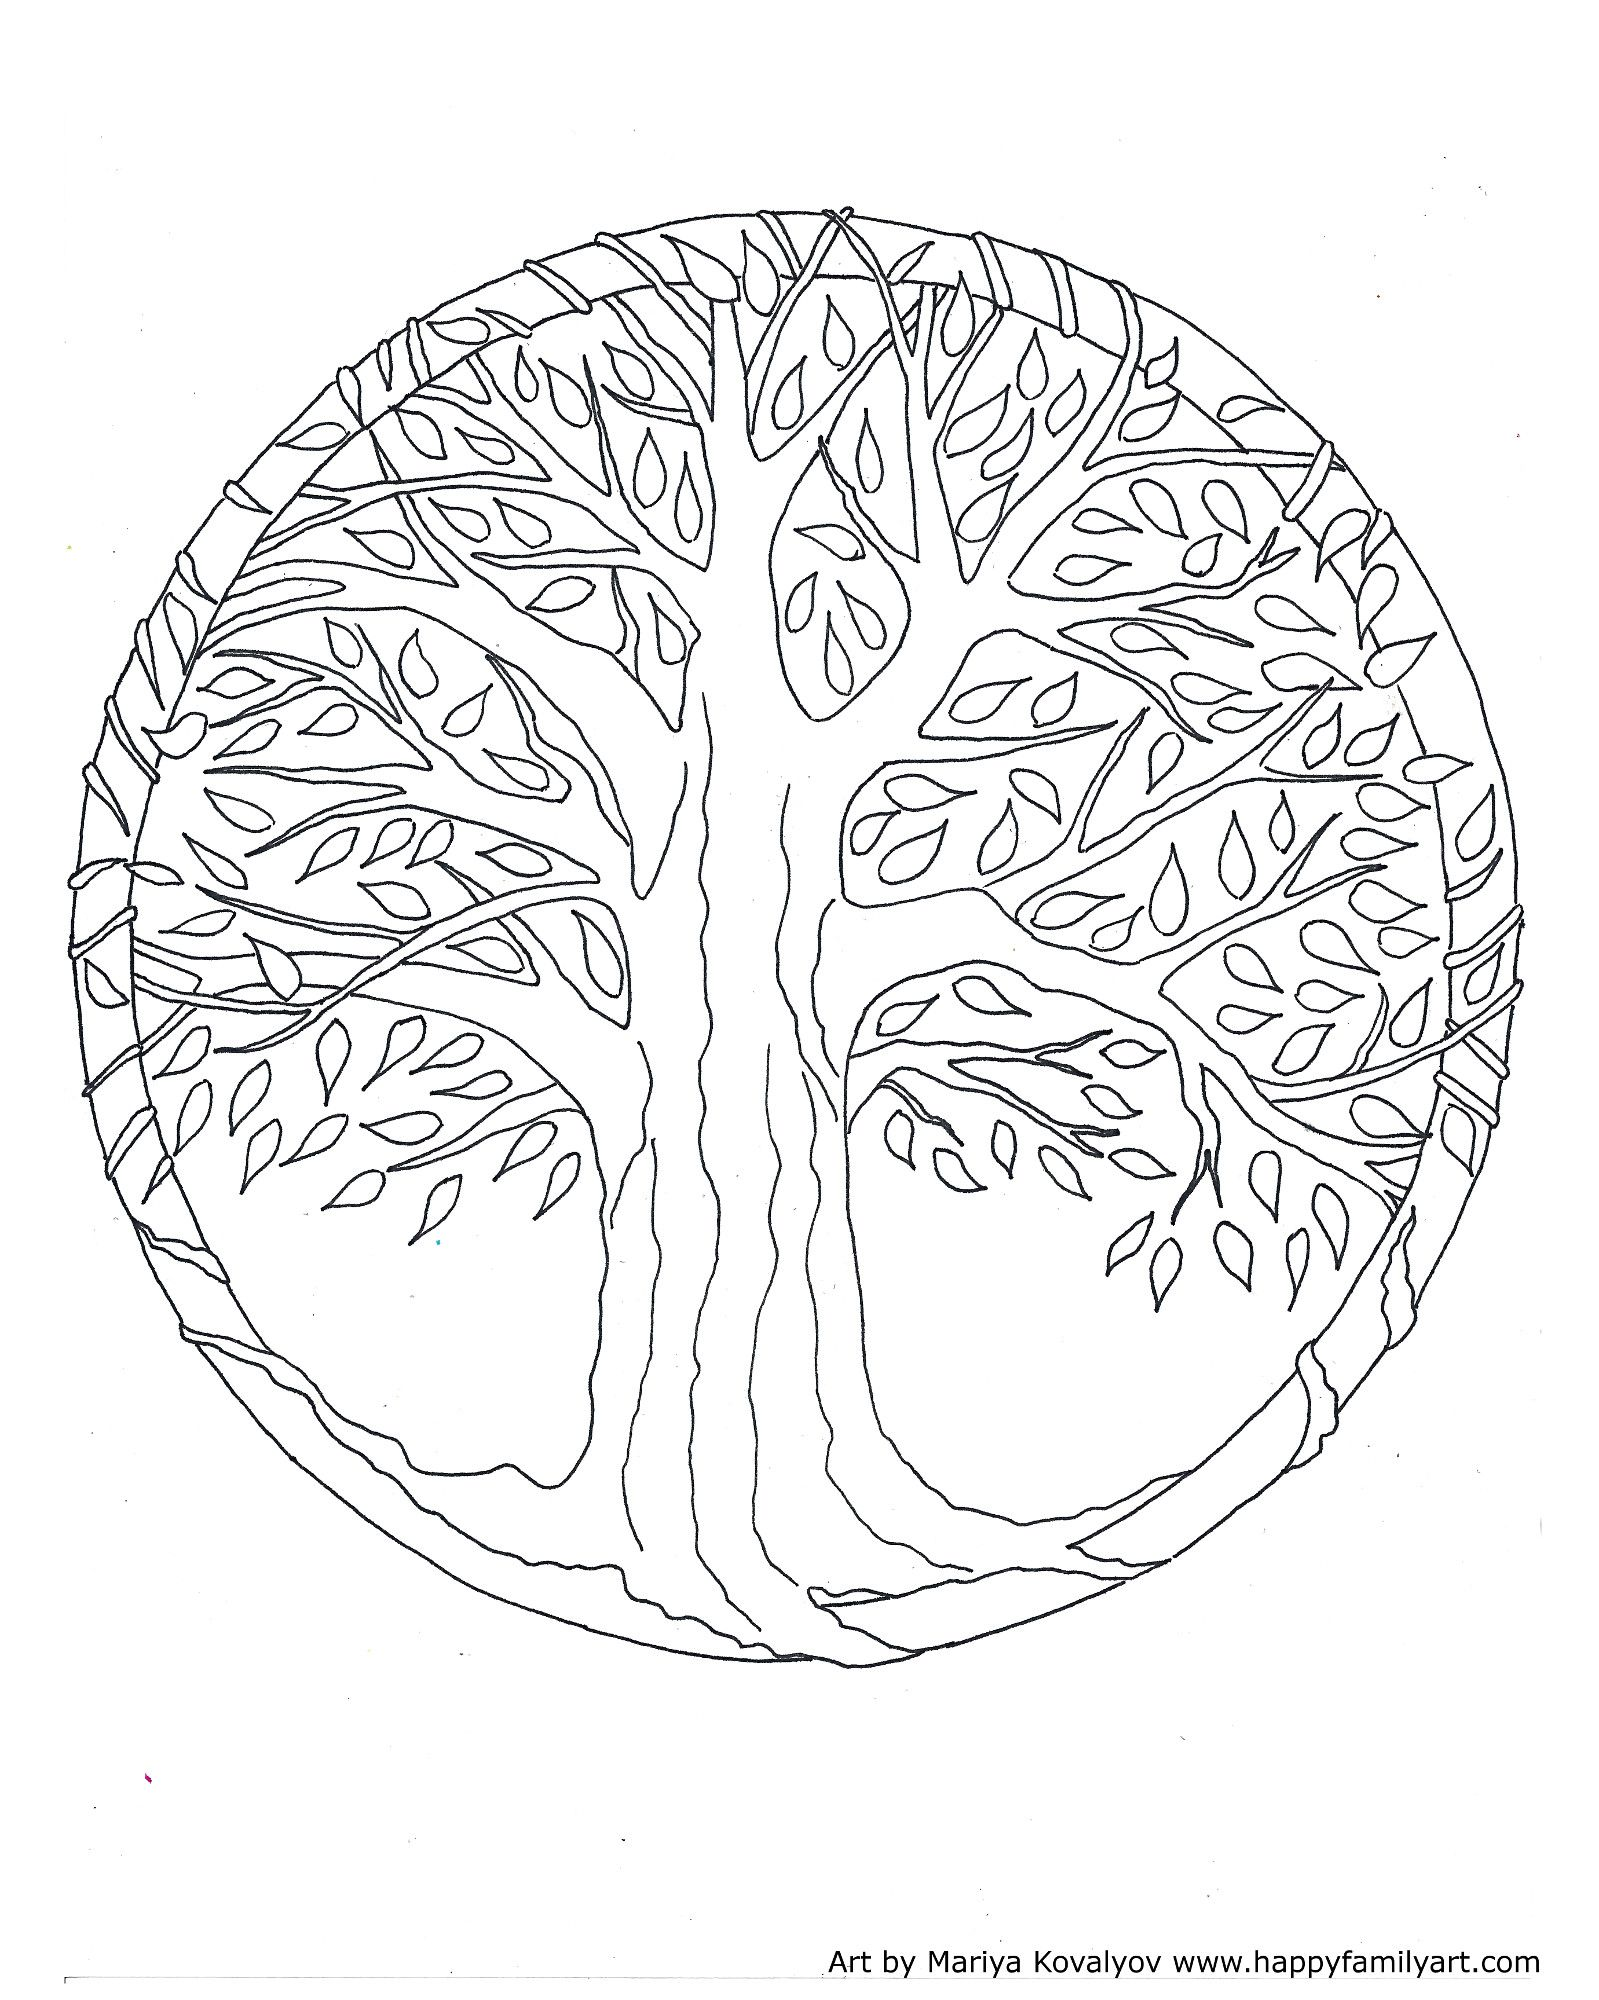 Tree Of Life Coloring Pages : coloring, pages, Happy, Family, Original, Coloring, Pages, Mandala, Pages,